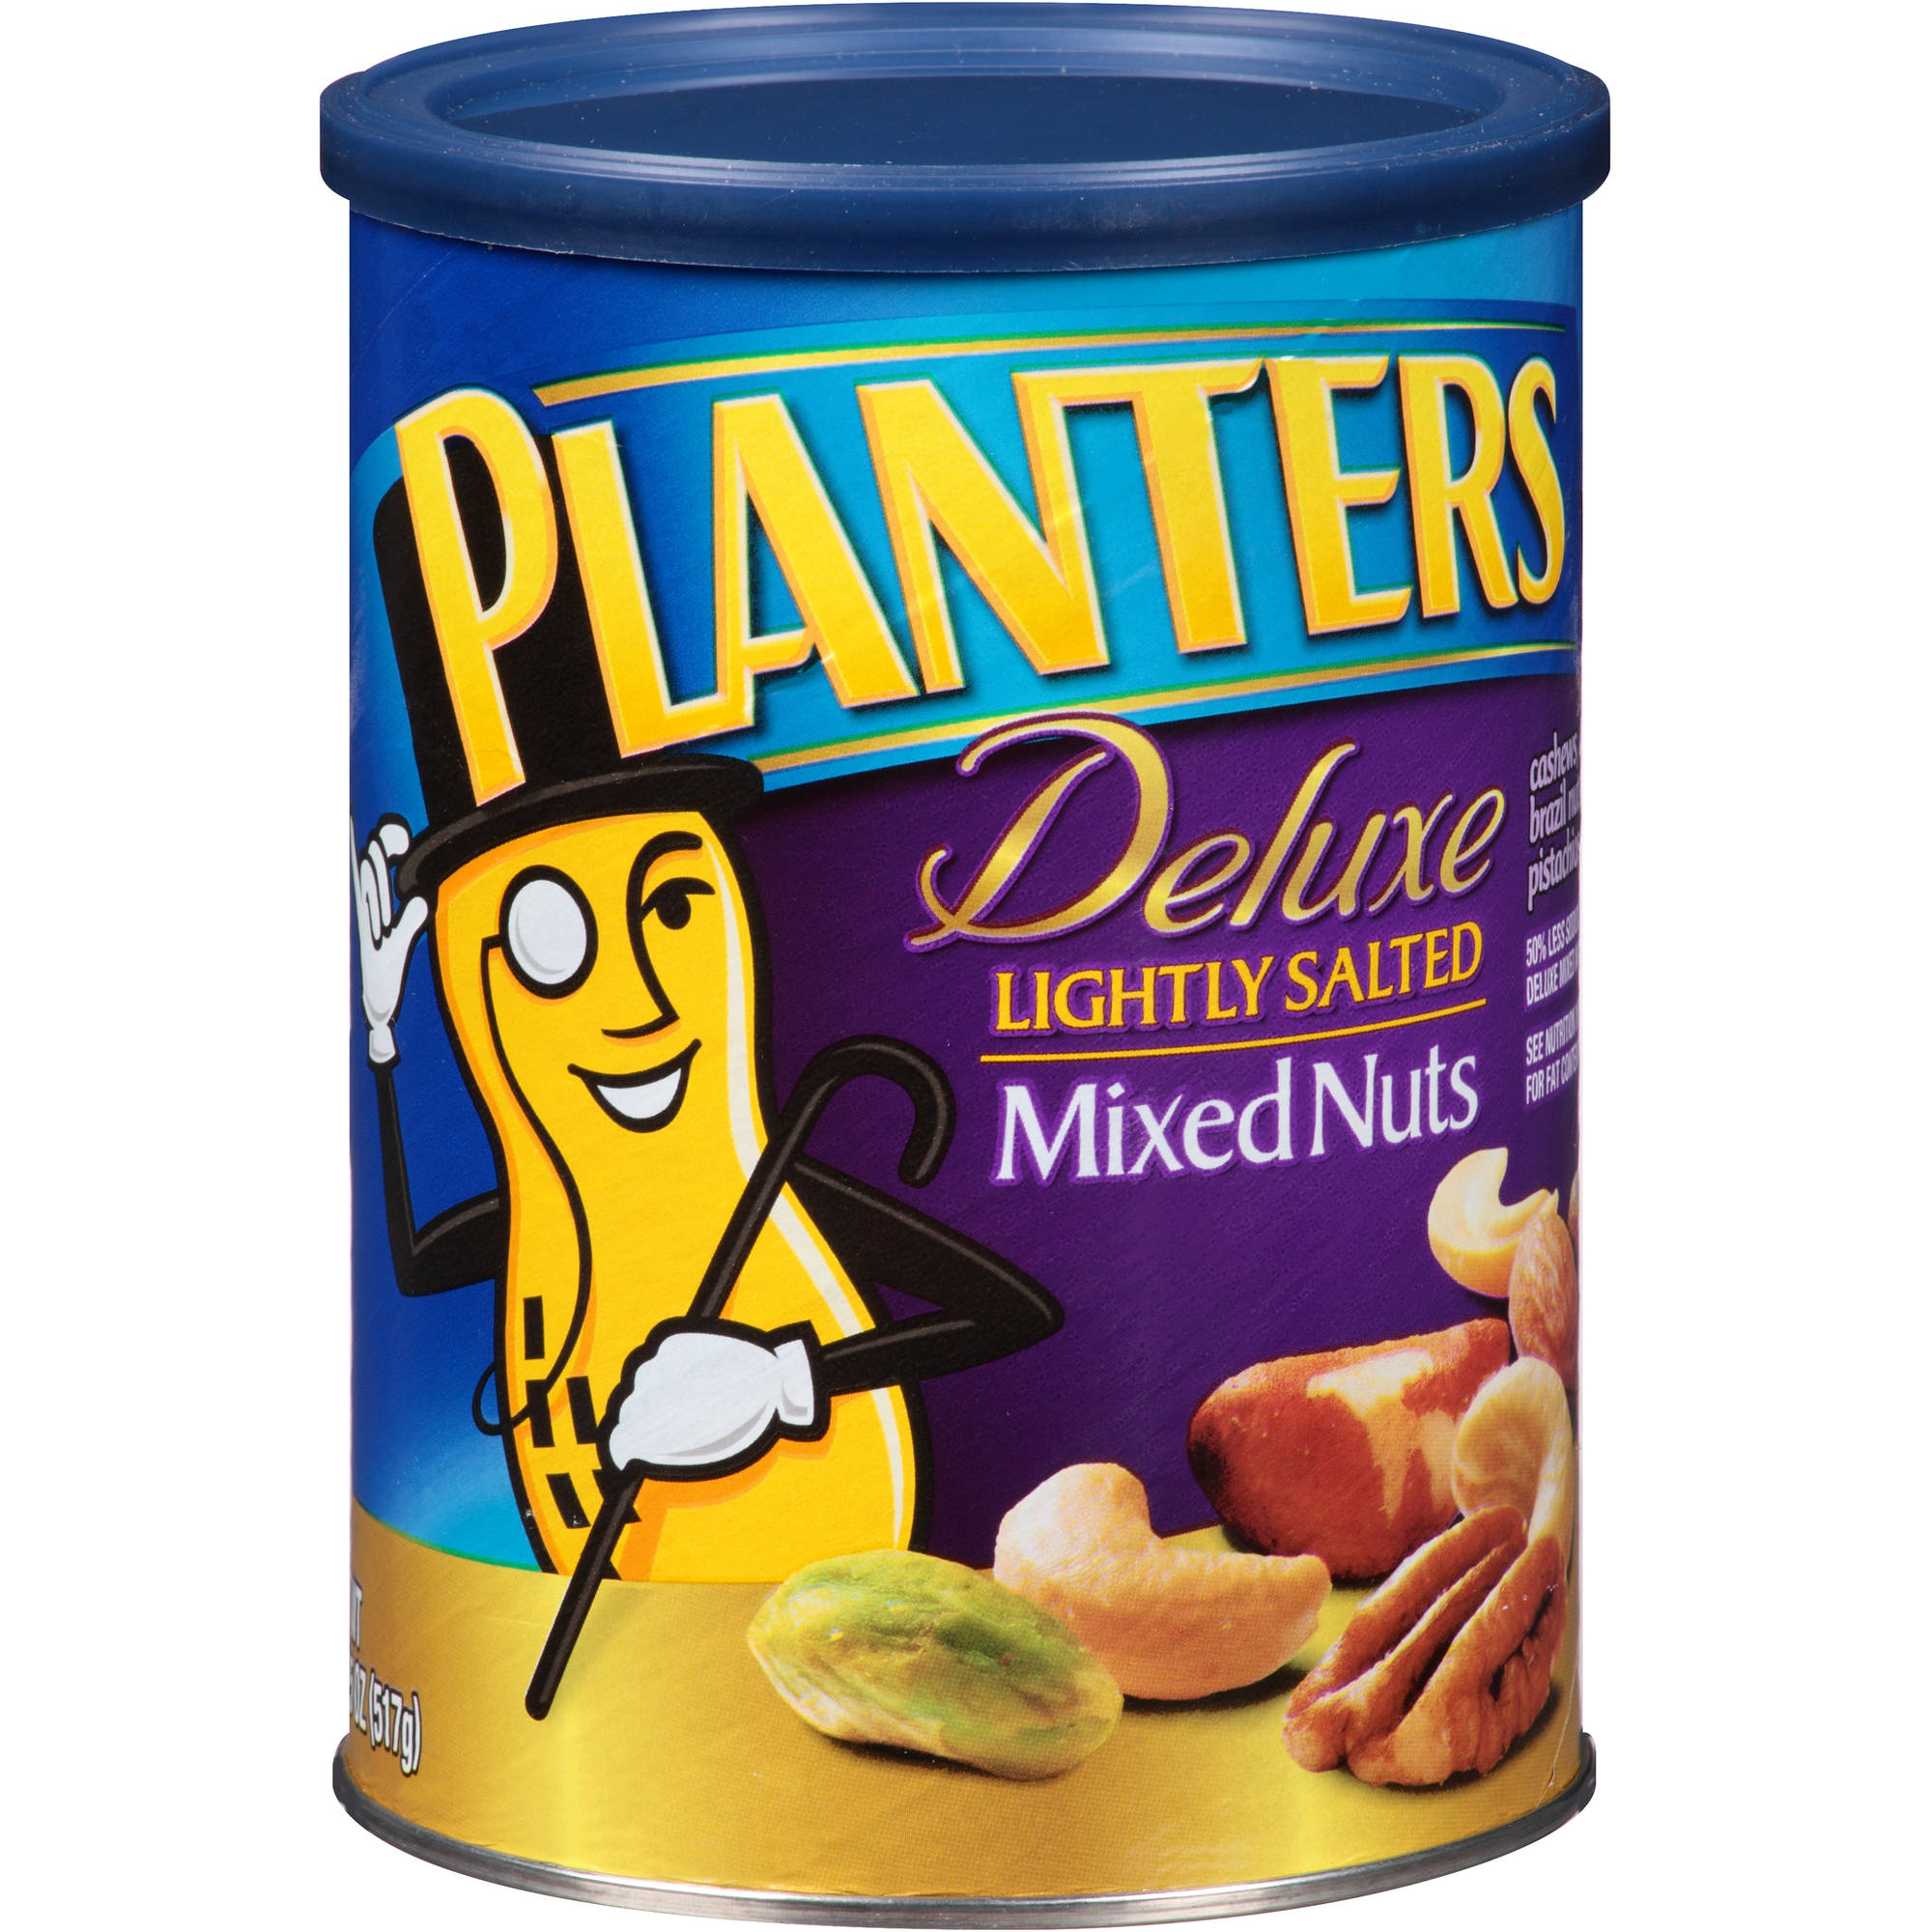 Planters Deluxe Lightly Salted Mixed Nuts 18 25 Oz